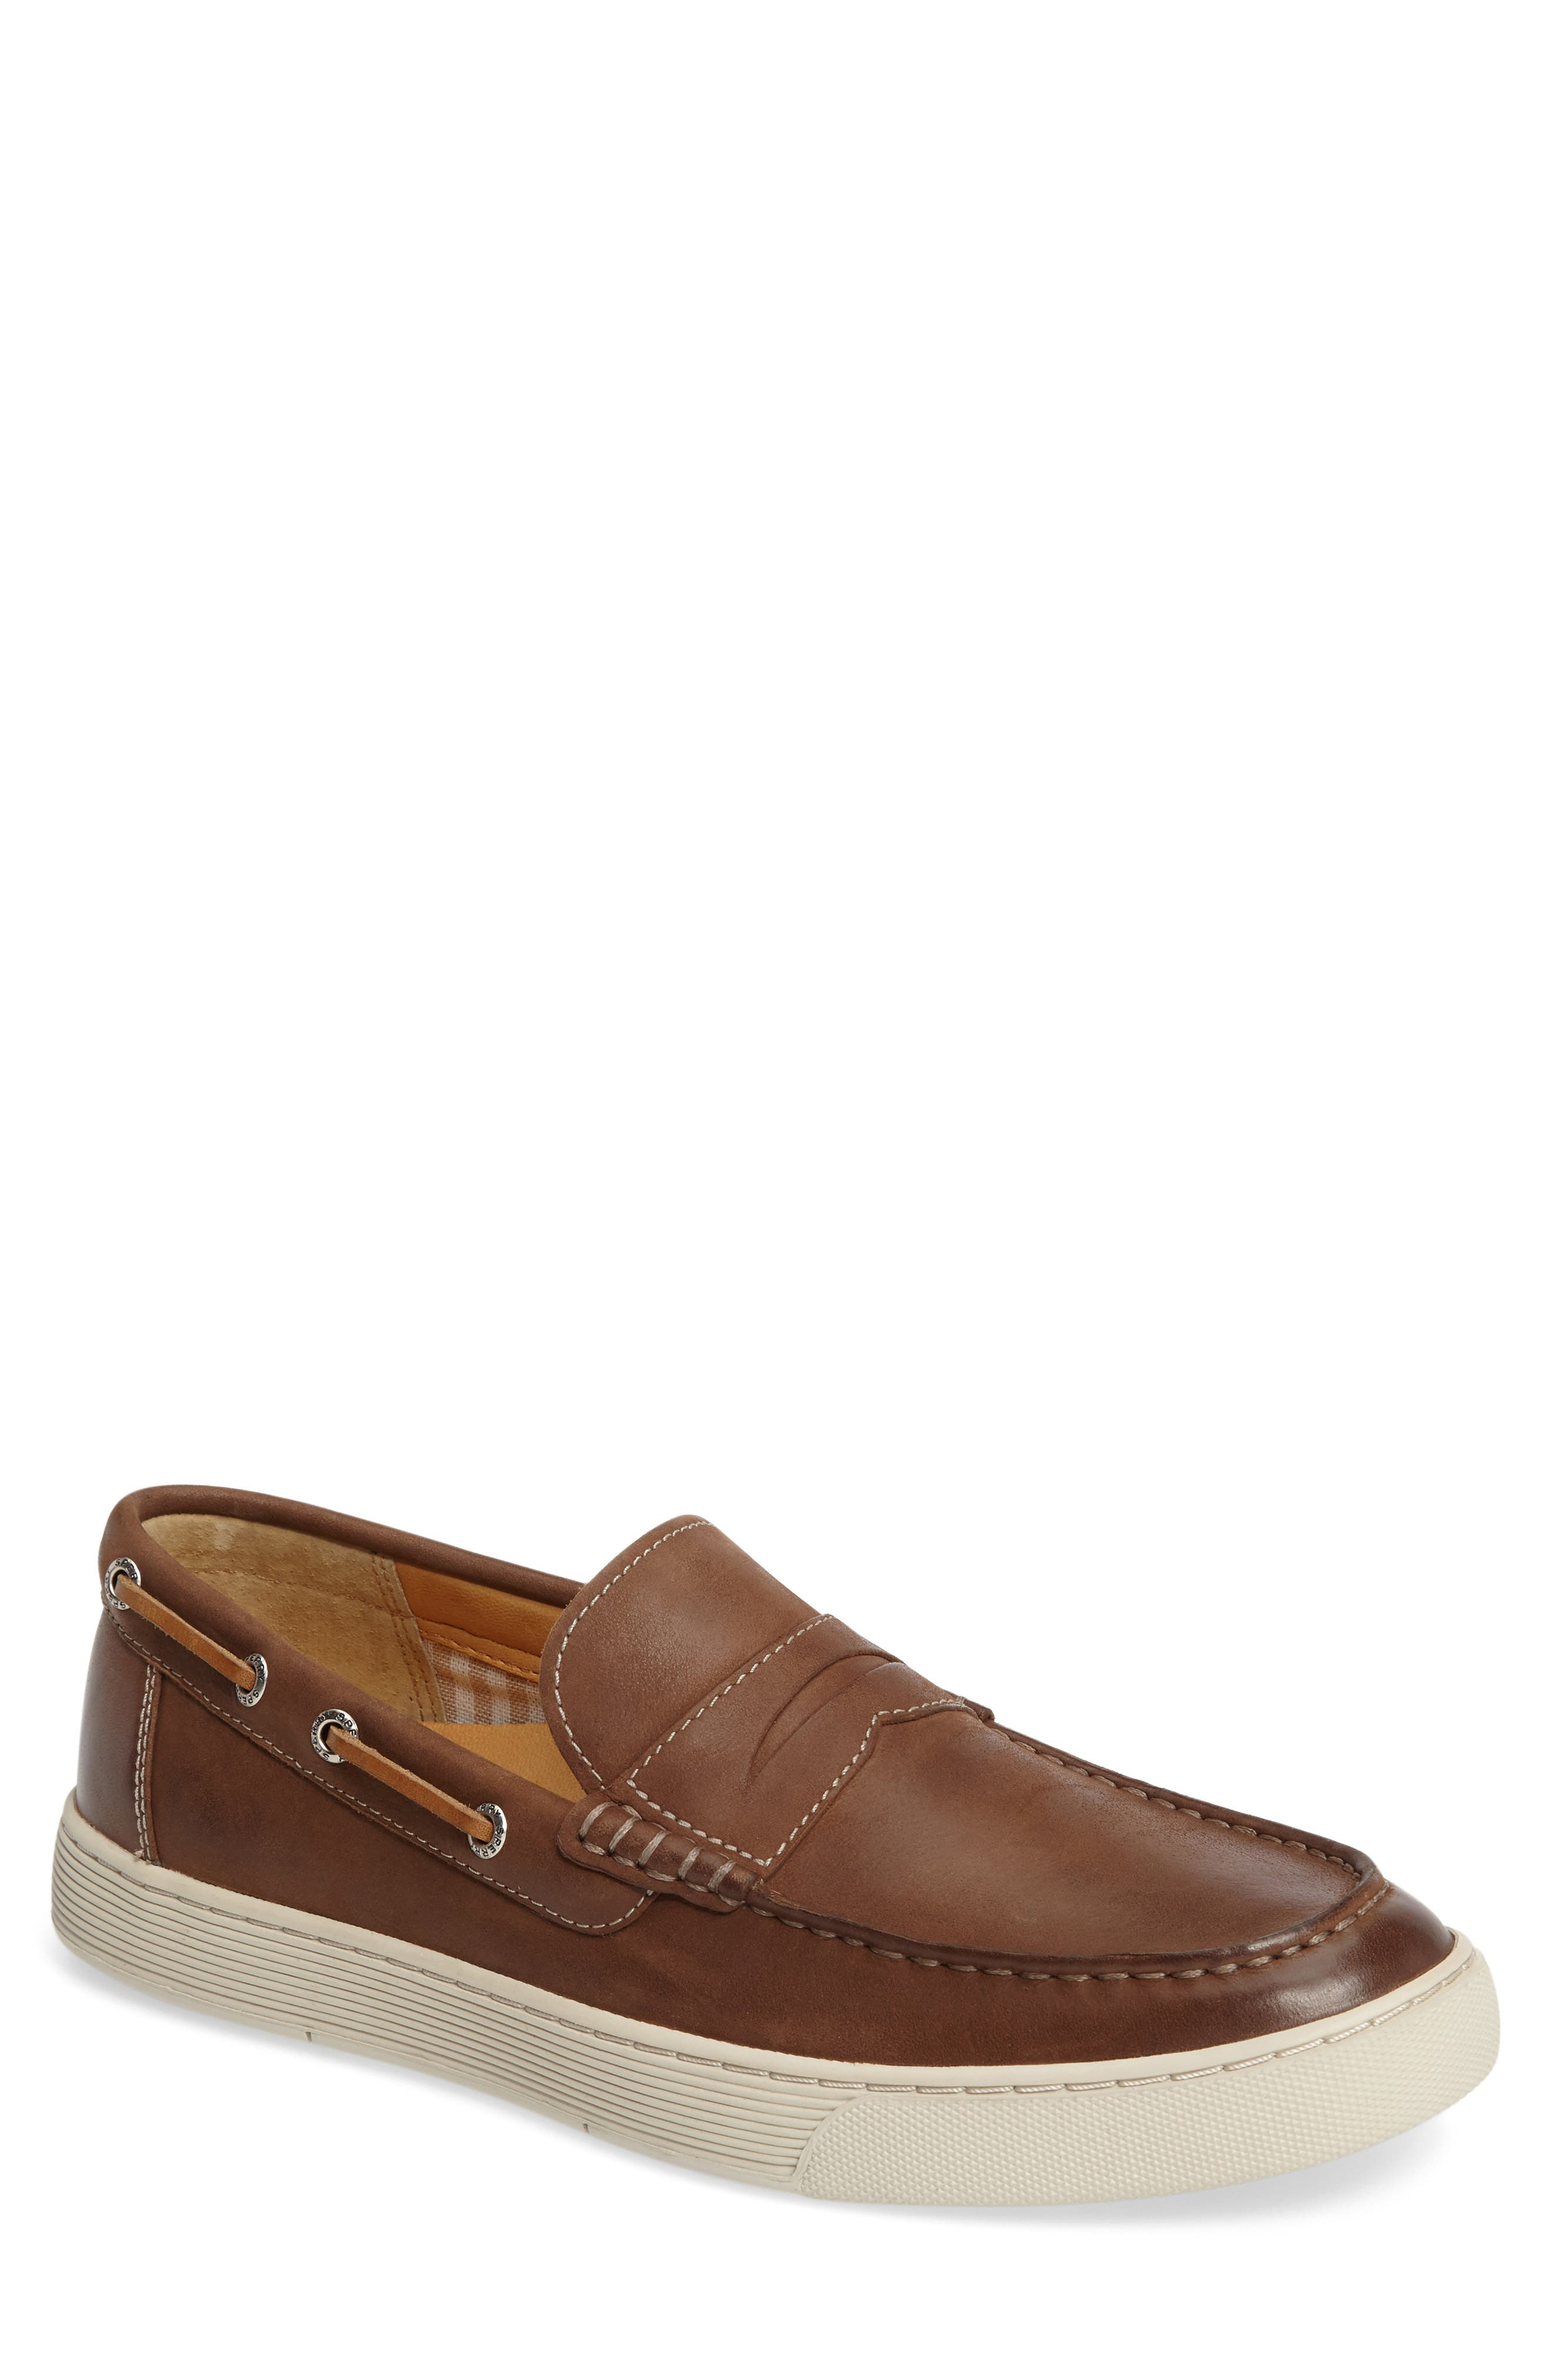 Main Image - Sperry Gold Cup Penny Loafer (Men)